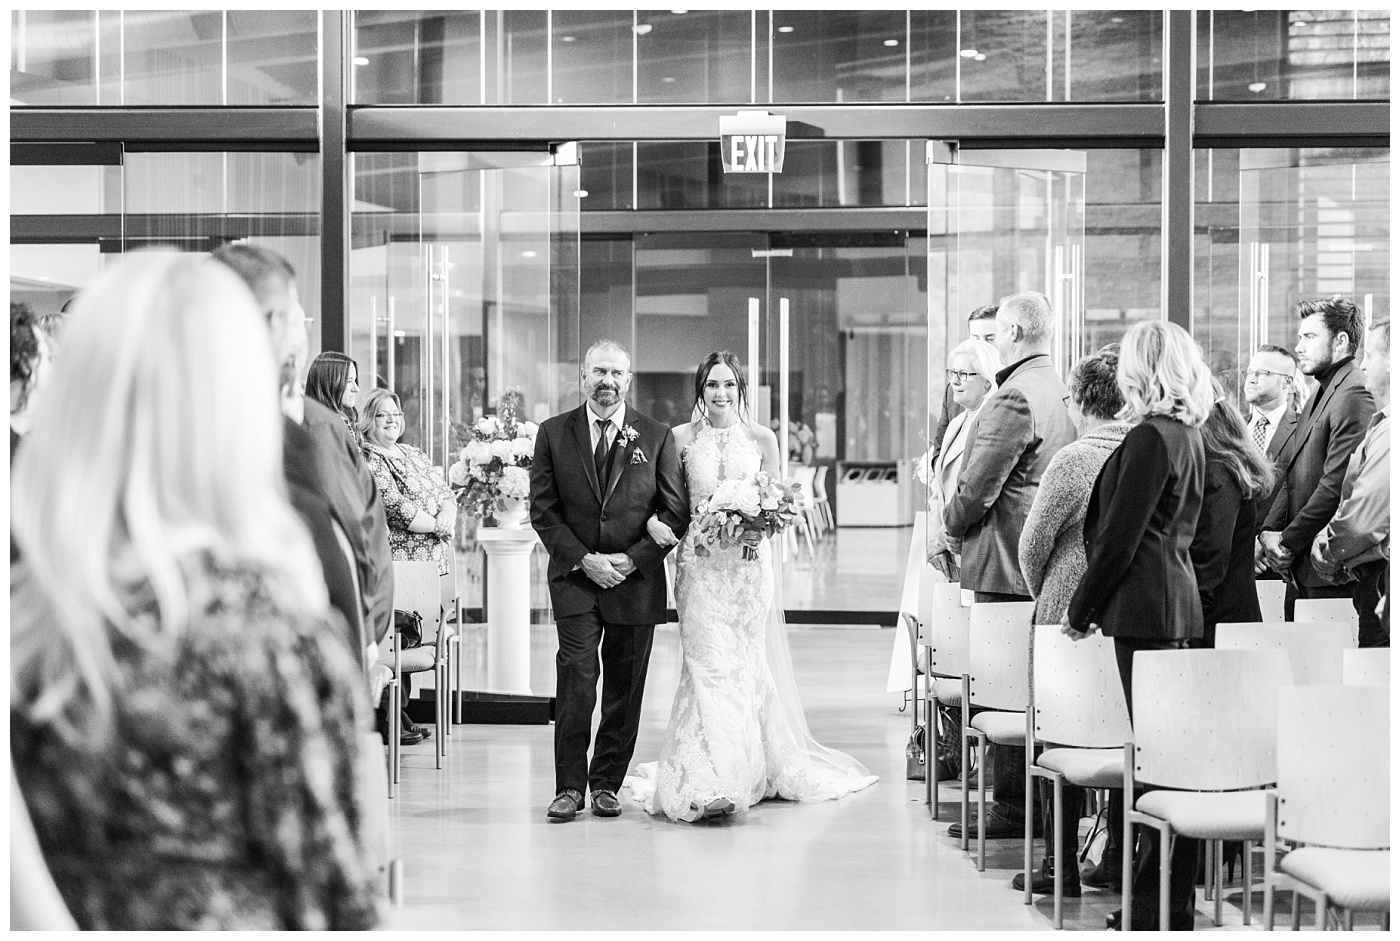 Stephanie Marie Photography Unitarian Universalist Society Church Ceremony Hotel Kirkwood Reception Cedar Rapids Iowa City Wedding Photographer Sean Madison Moore_0103.jpg